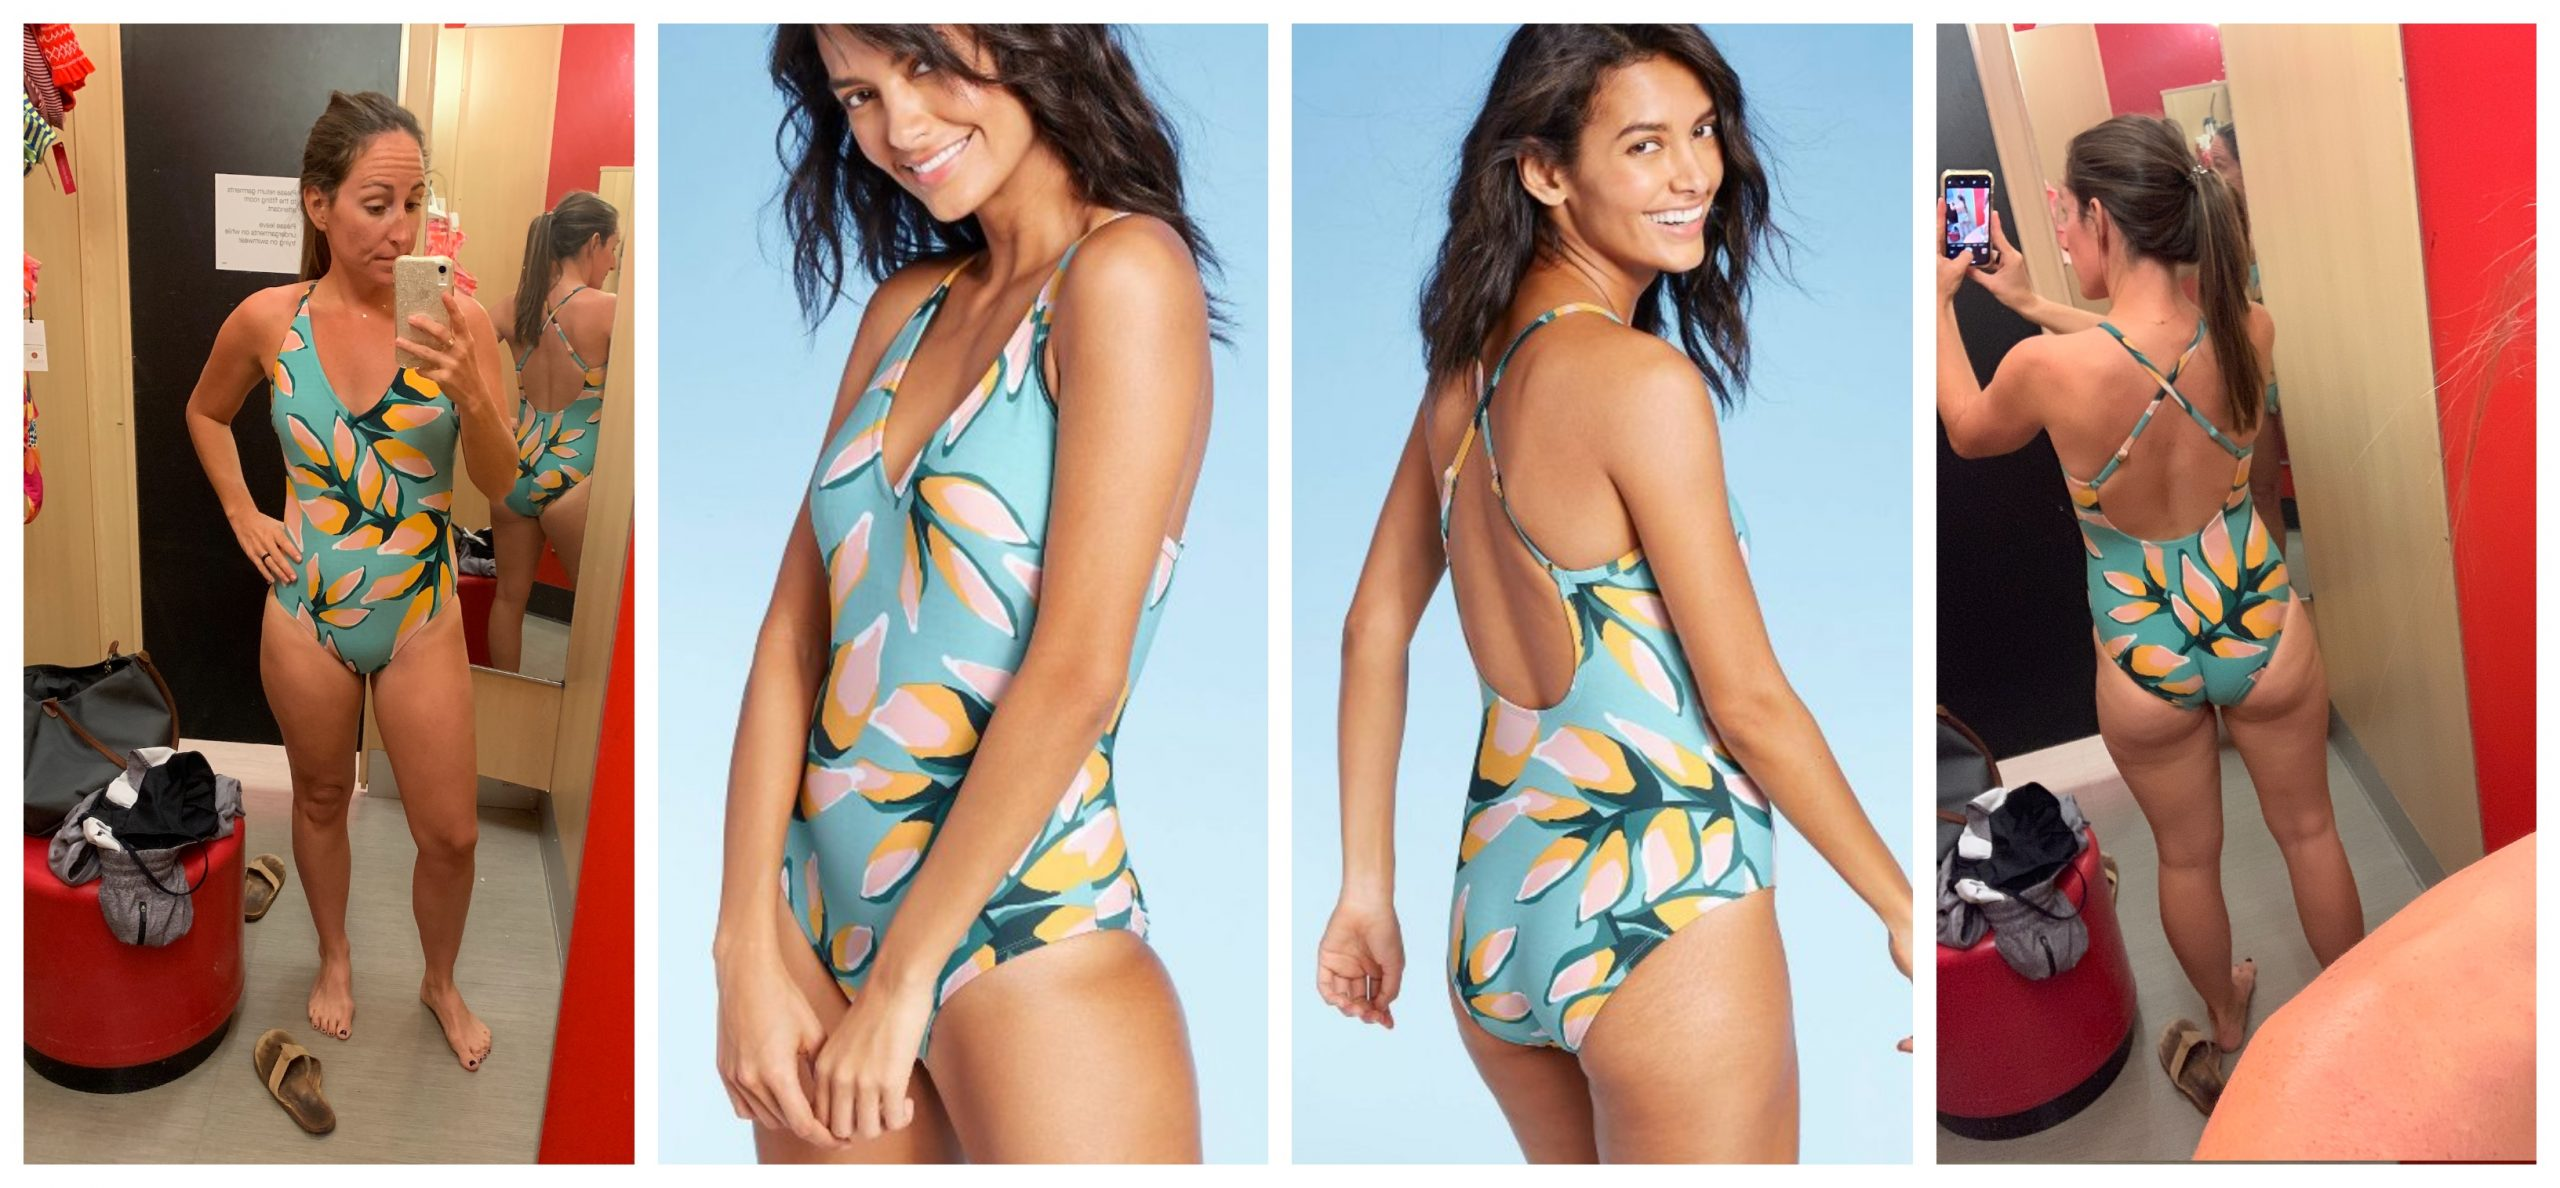 THE OFFICIAL GUIDE TO TARGET SWIMWEAR 2020 - My official dressing room try-on of Target swimsuits featuring sizing information, style details and more! | Target Bikinis - Target One Piece - Target Swimsuits - Target Swimsuits Women - One Piece Swimsuit Target - Target Women's Swimsuits - Cute Bathing Suits At Target